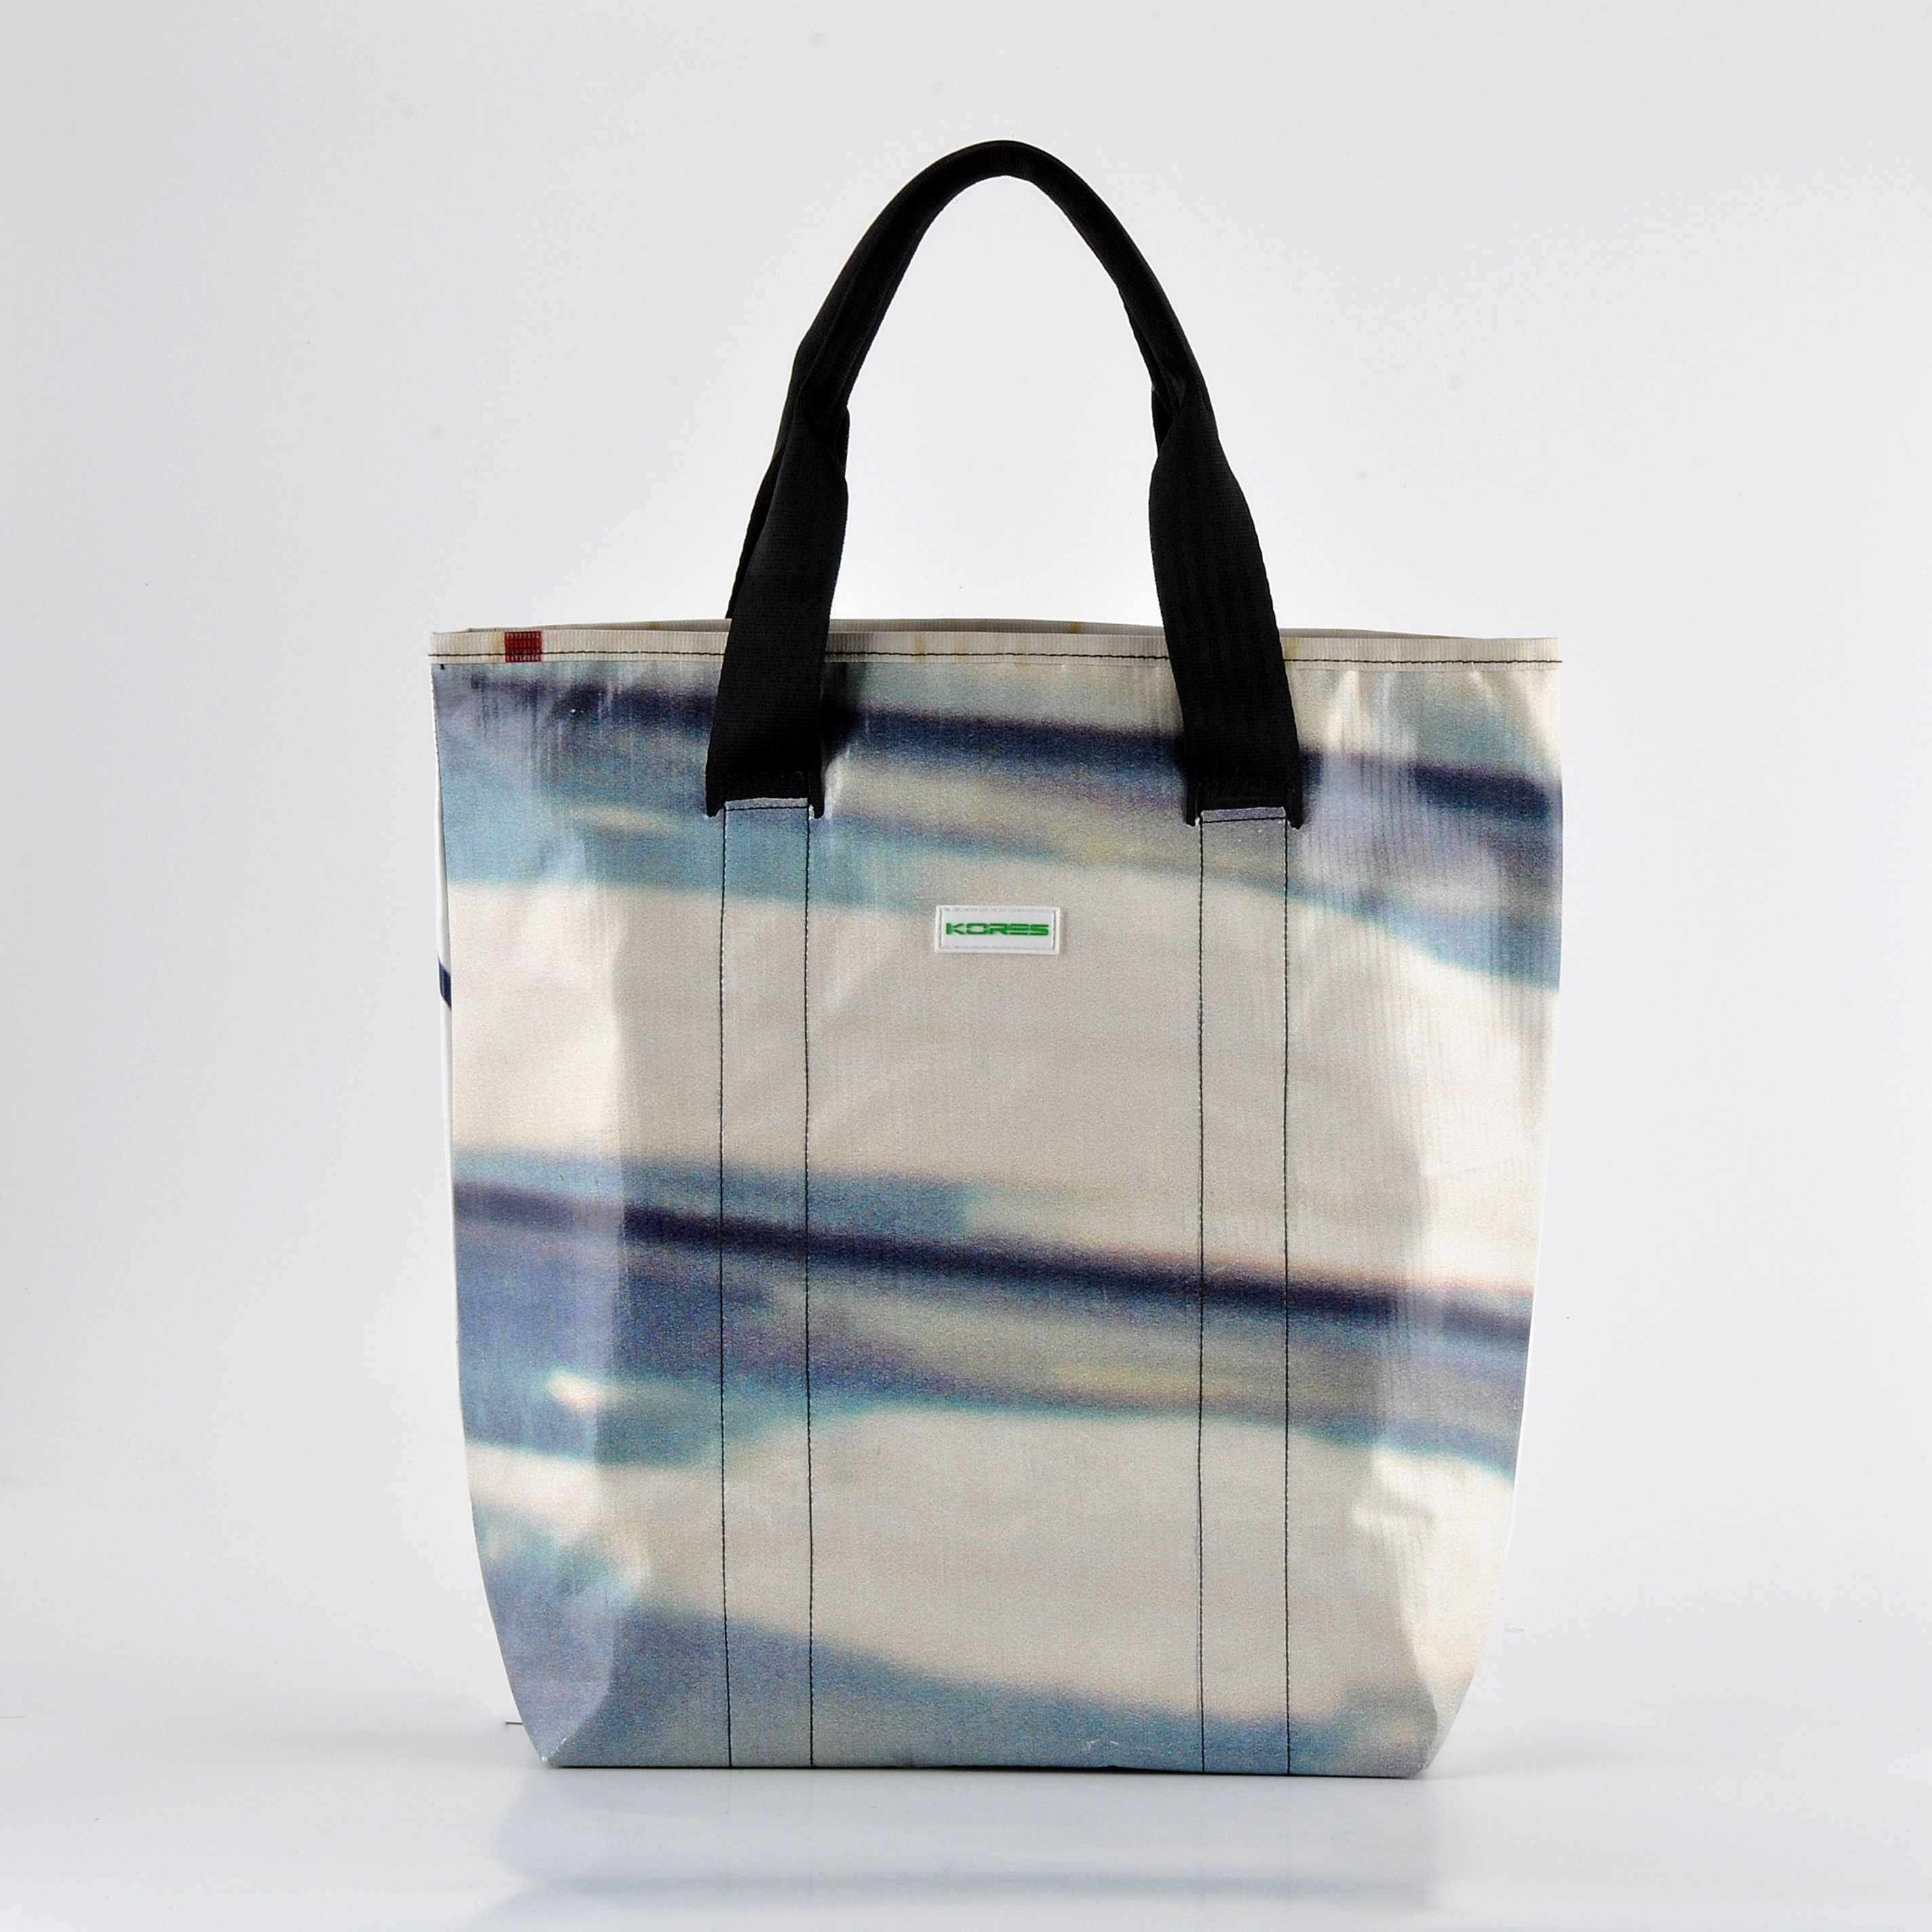 Add a touch of Kores to your life with this colourful, practical and beautifully crafted unisex shoulder bag.